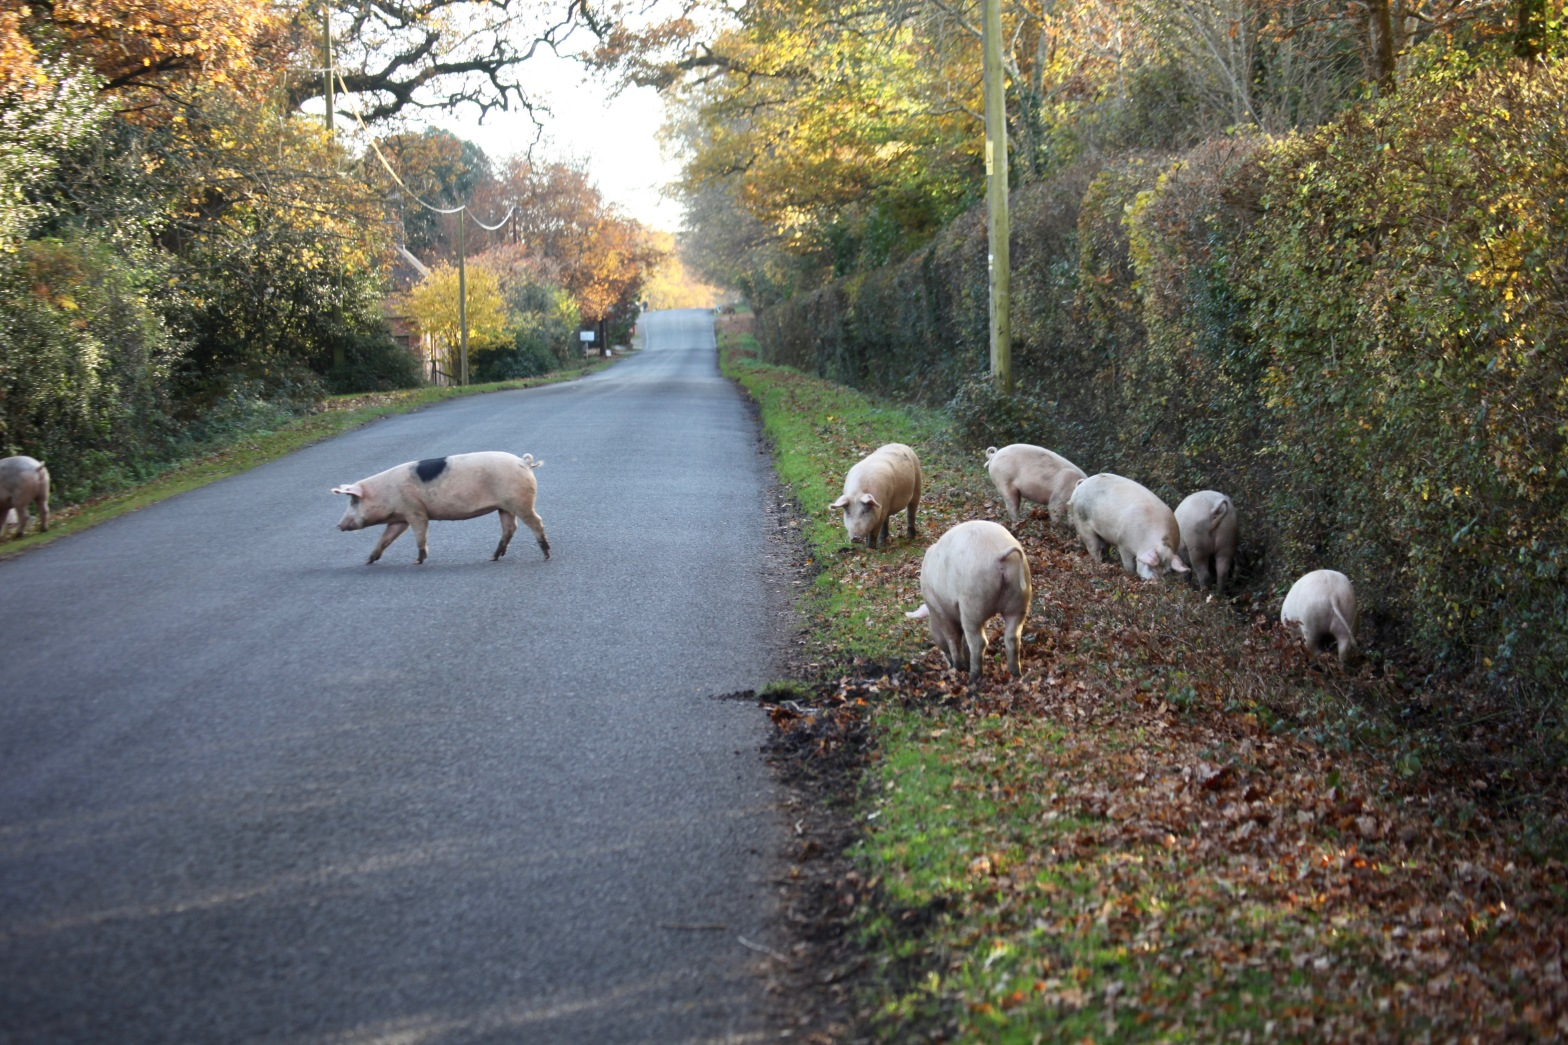 Pigs on road 1